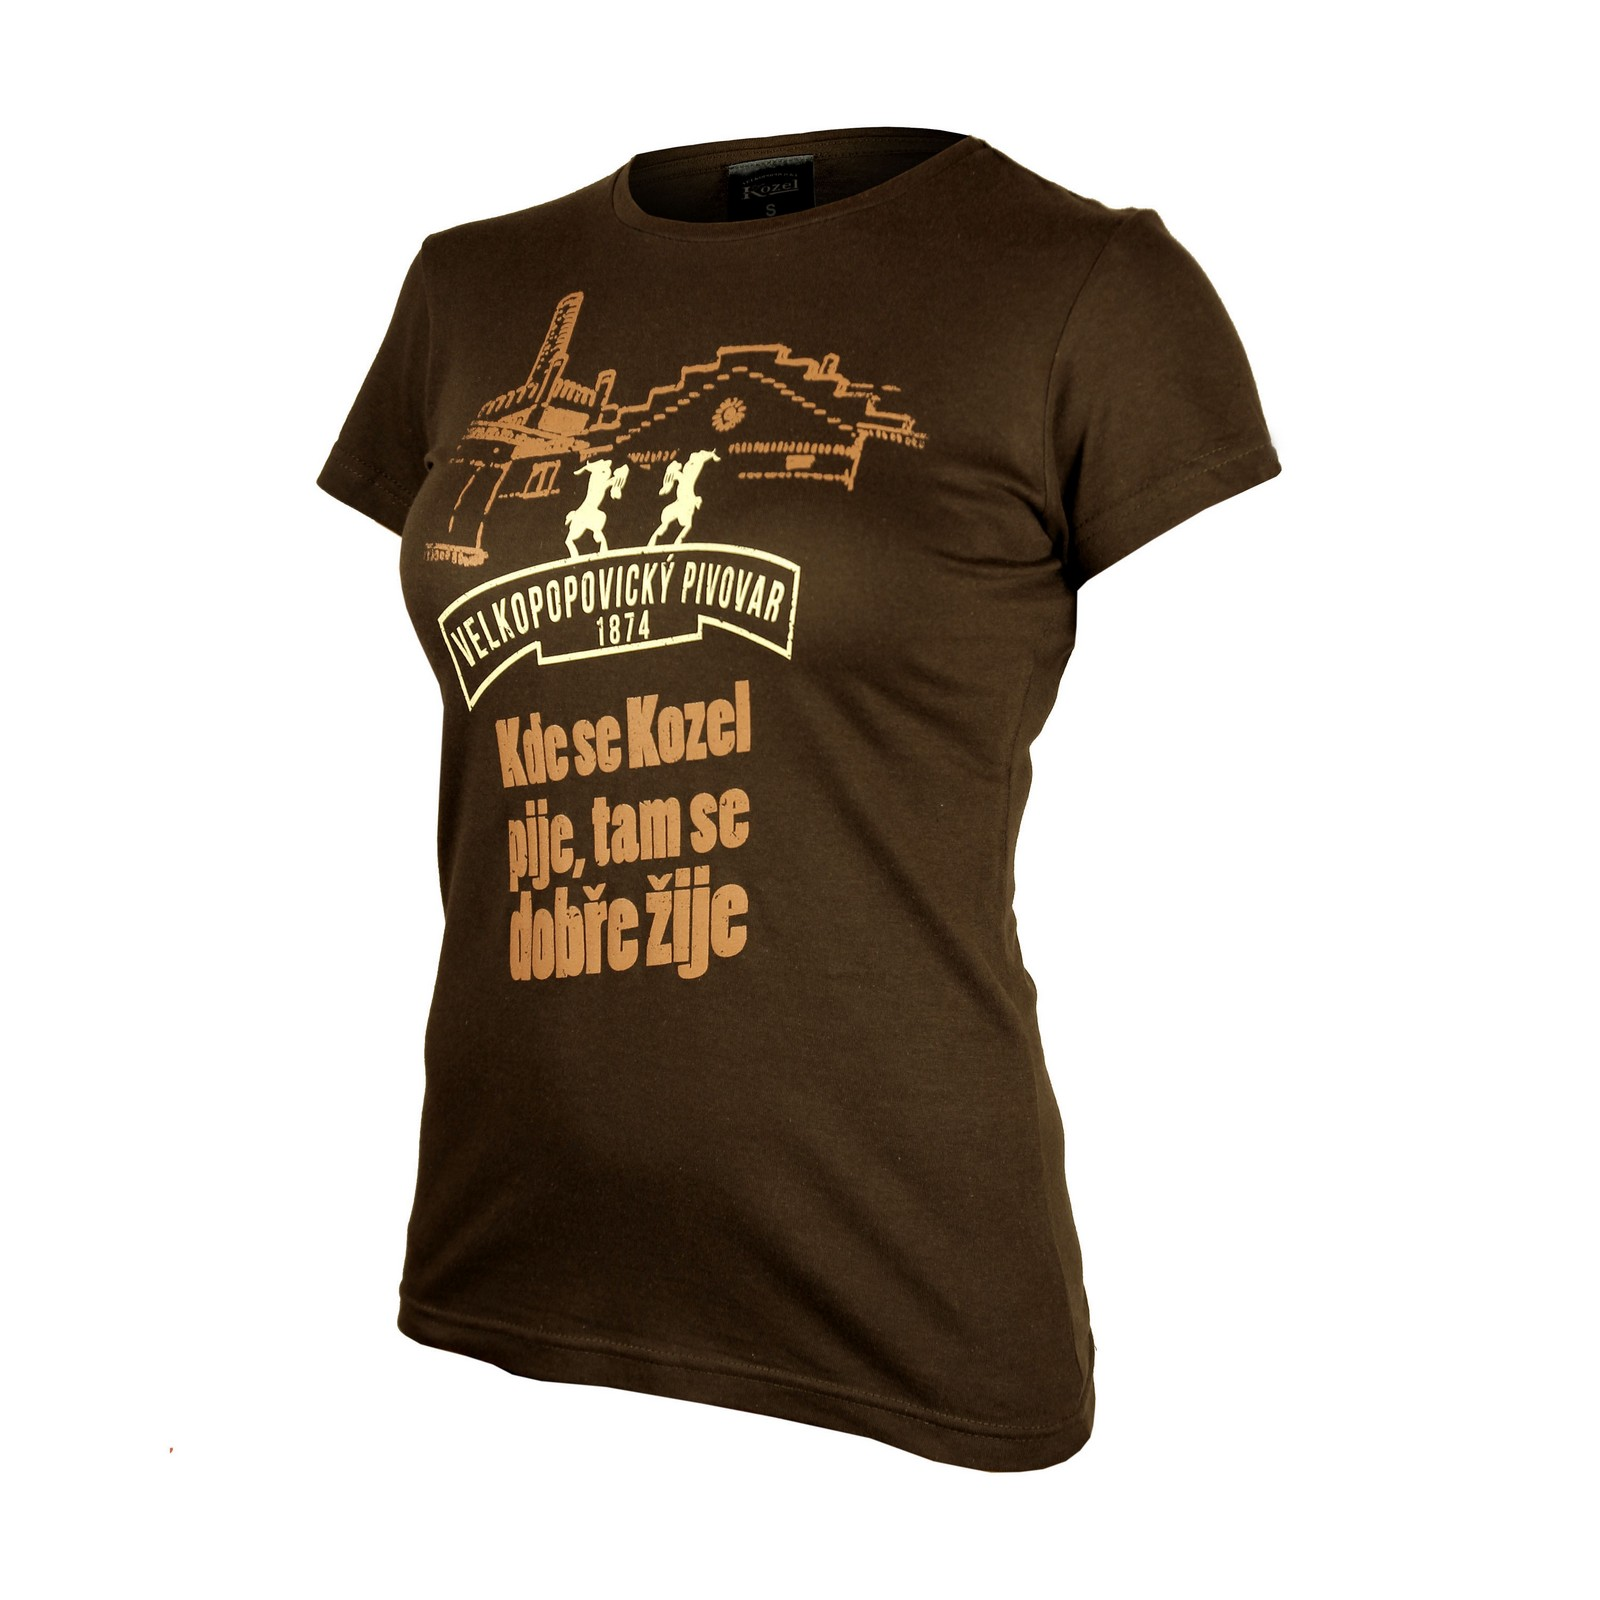 Ladies' Brown Kozel Brewery T-Shirt with embroidery